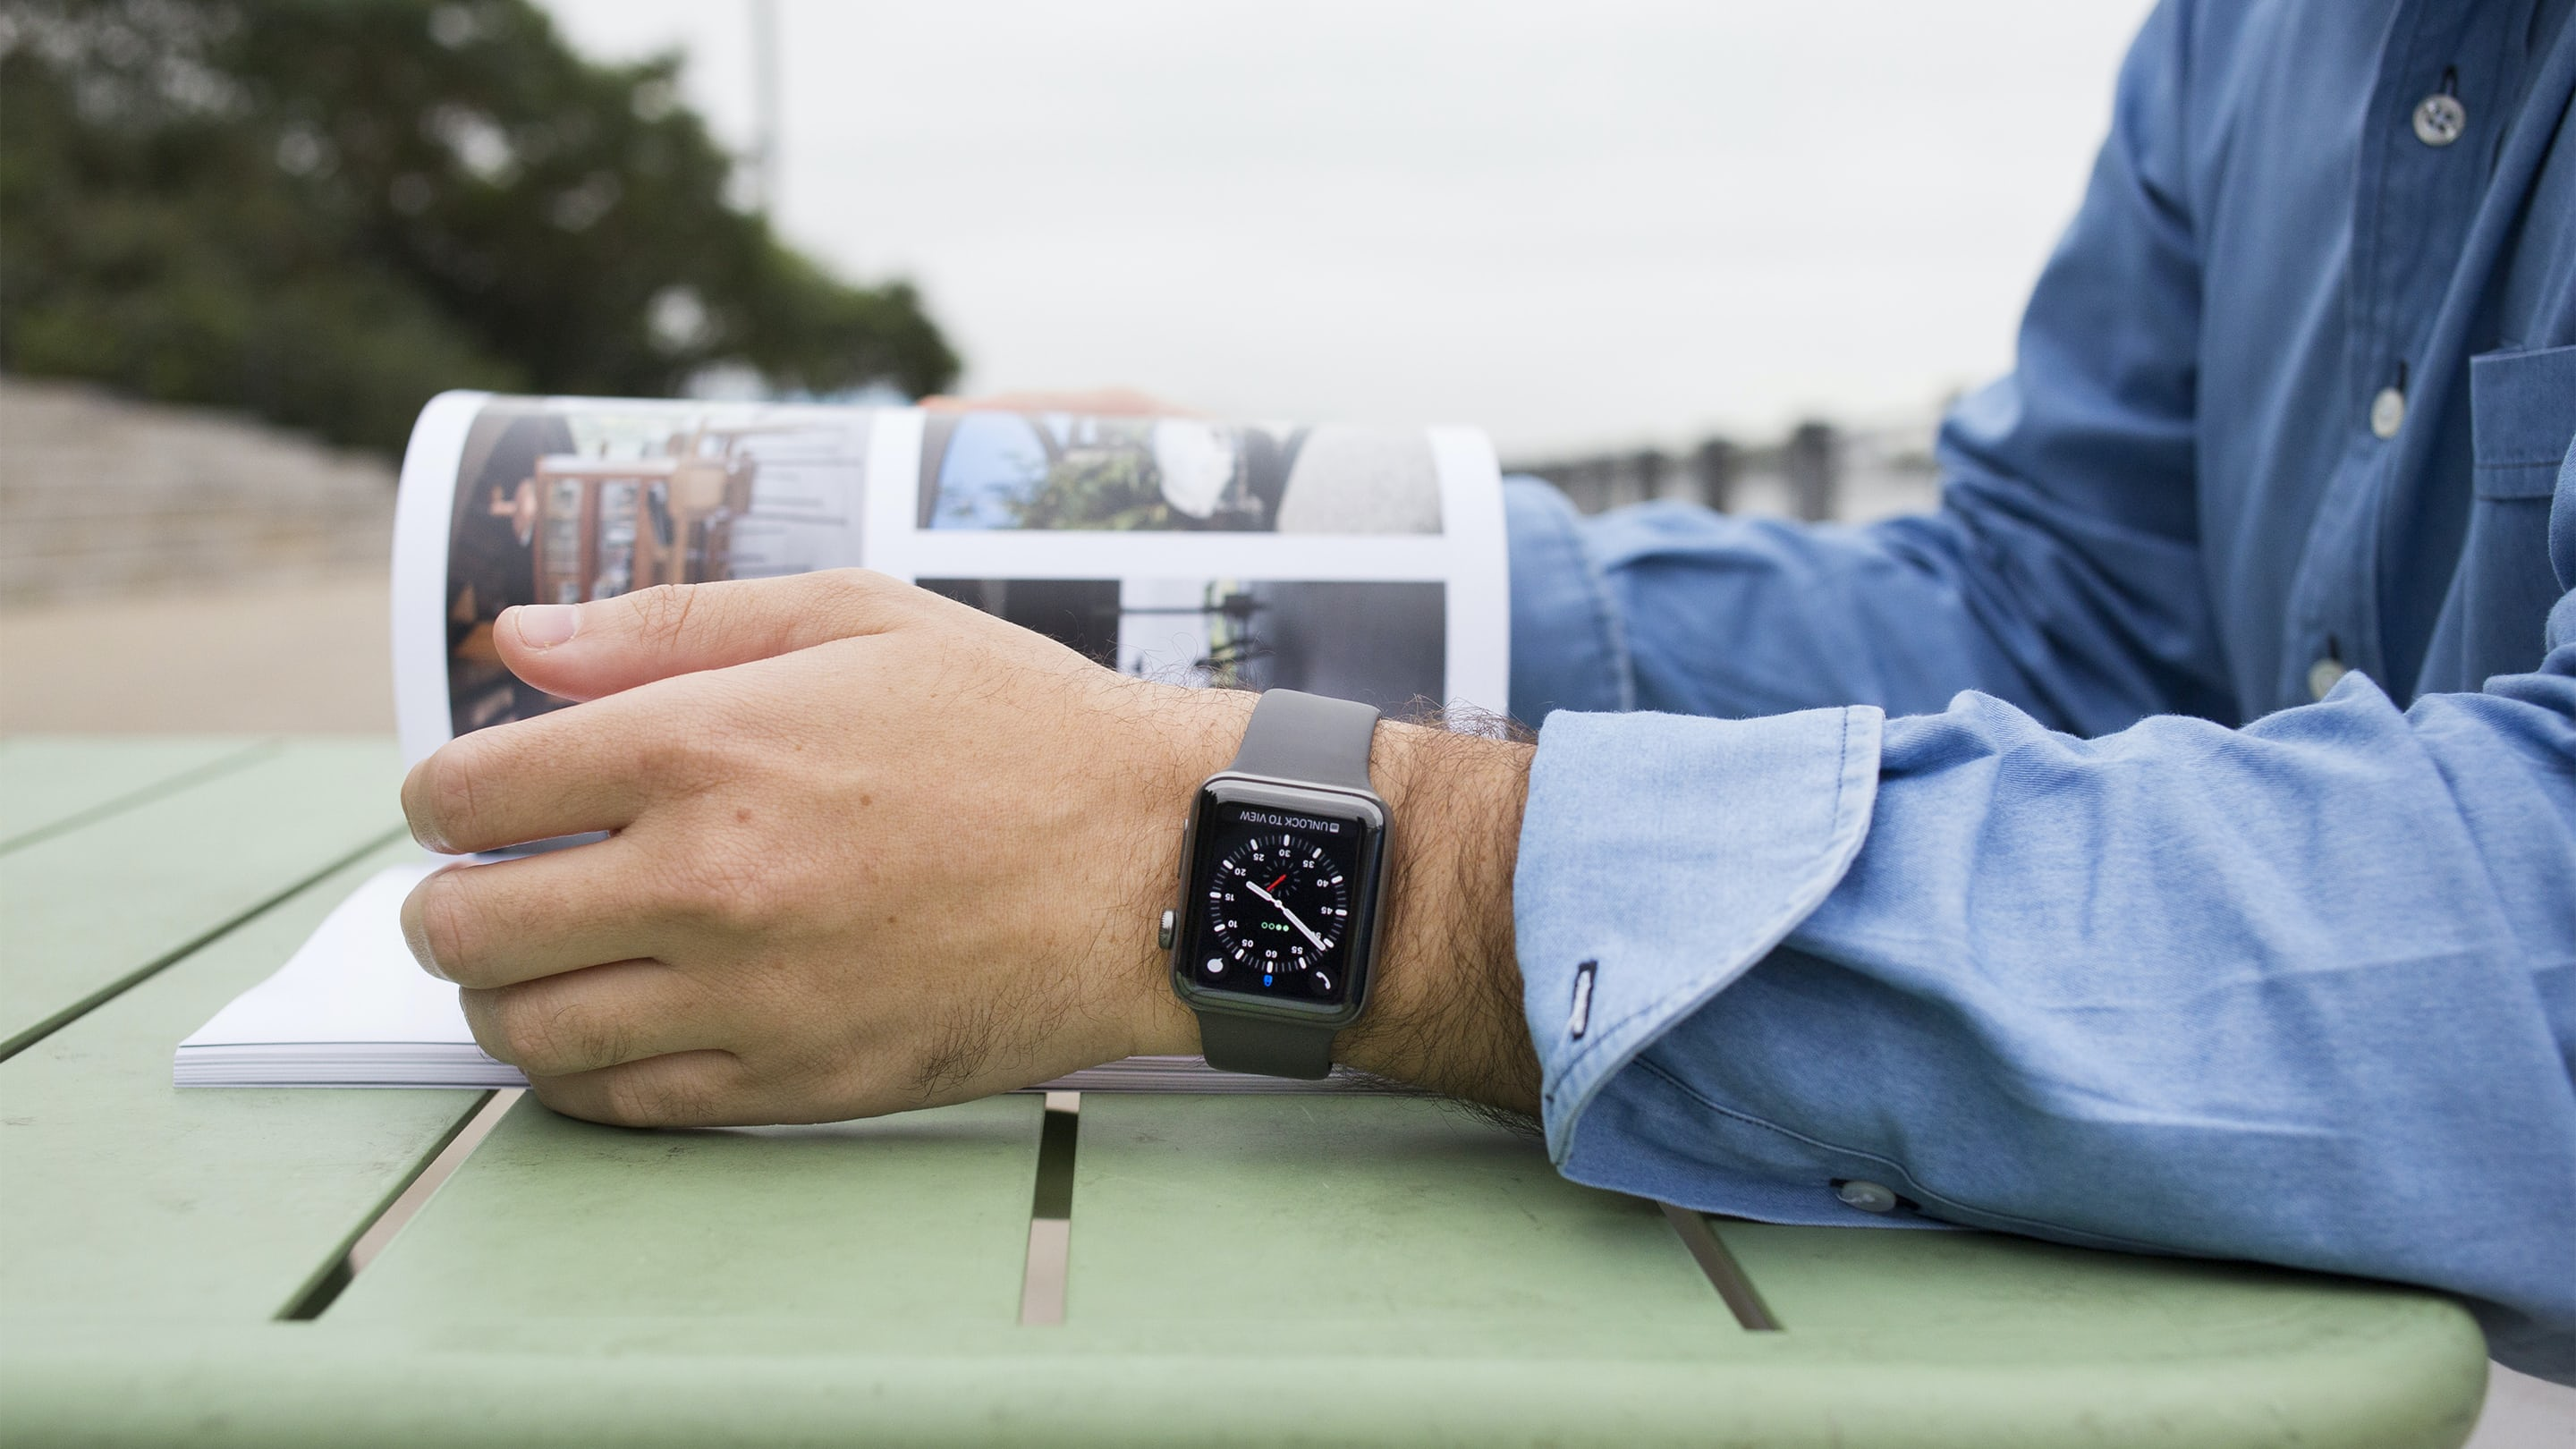 49802a0a67286 A Week On The Wrist: The Apple Watch Series 3 Edition - HODINKEE